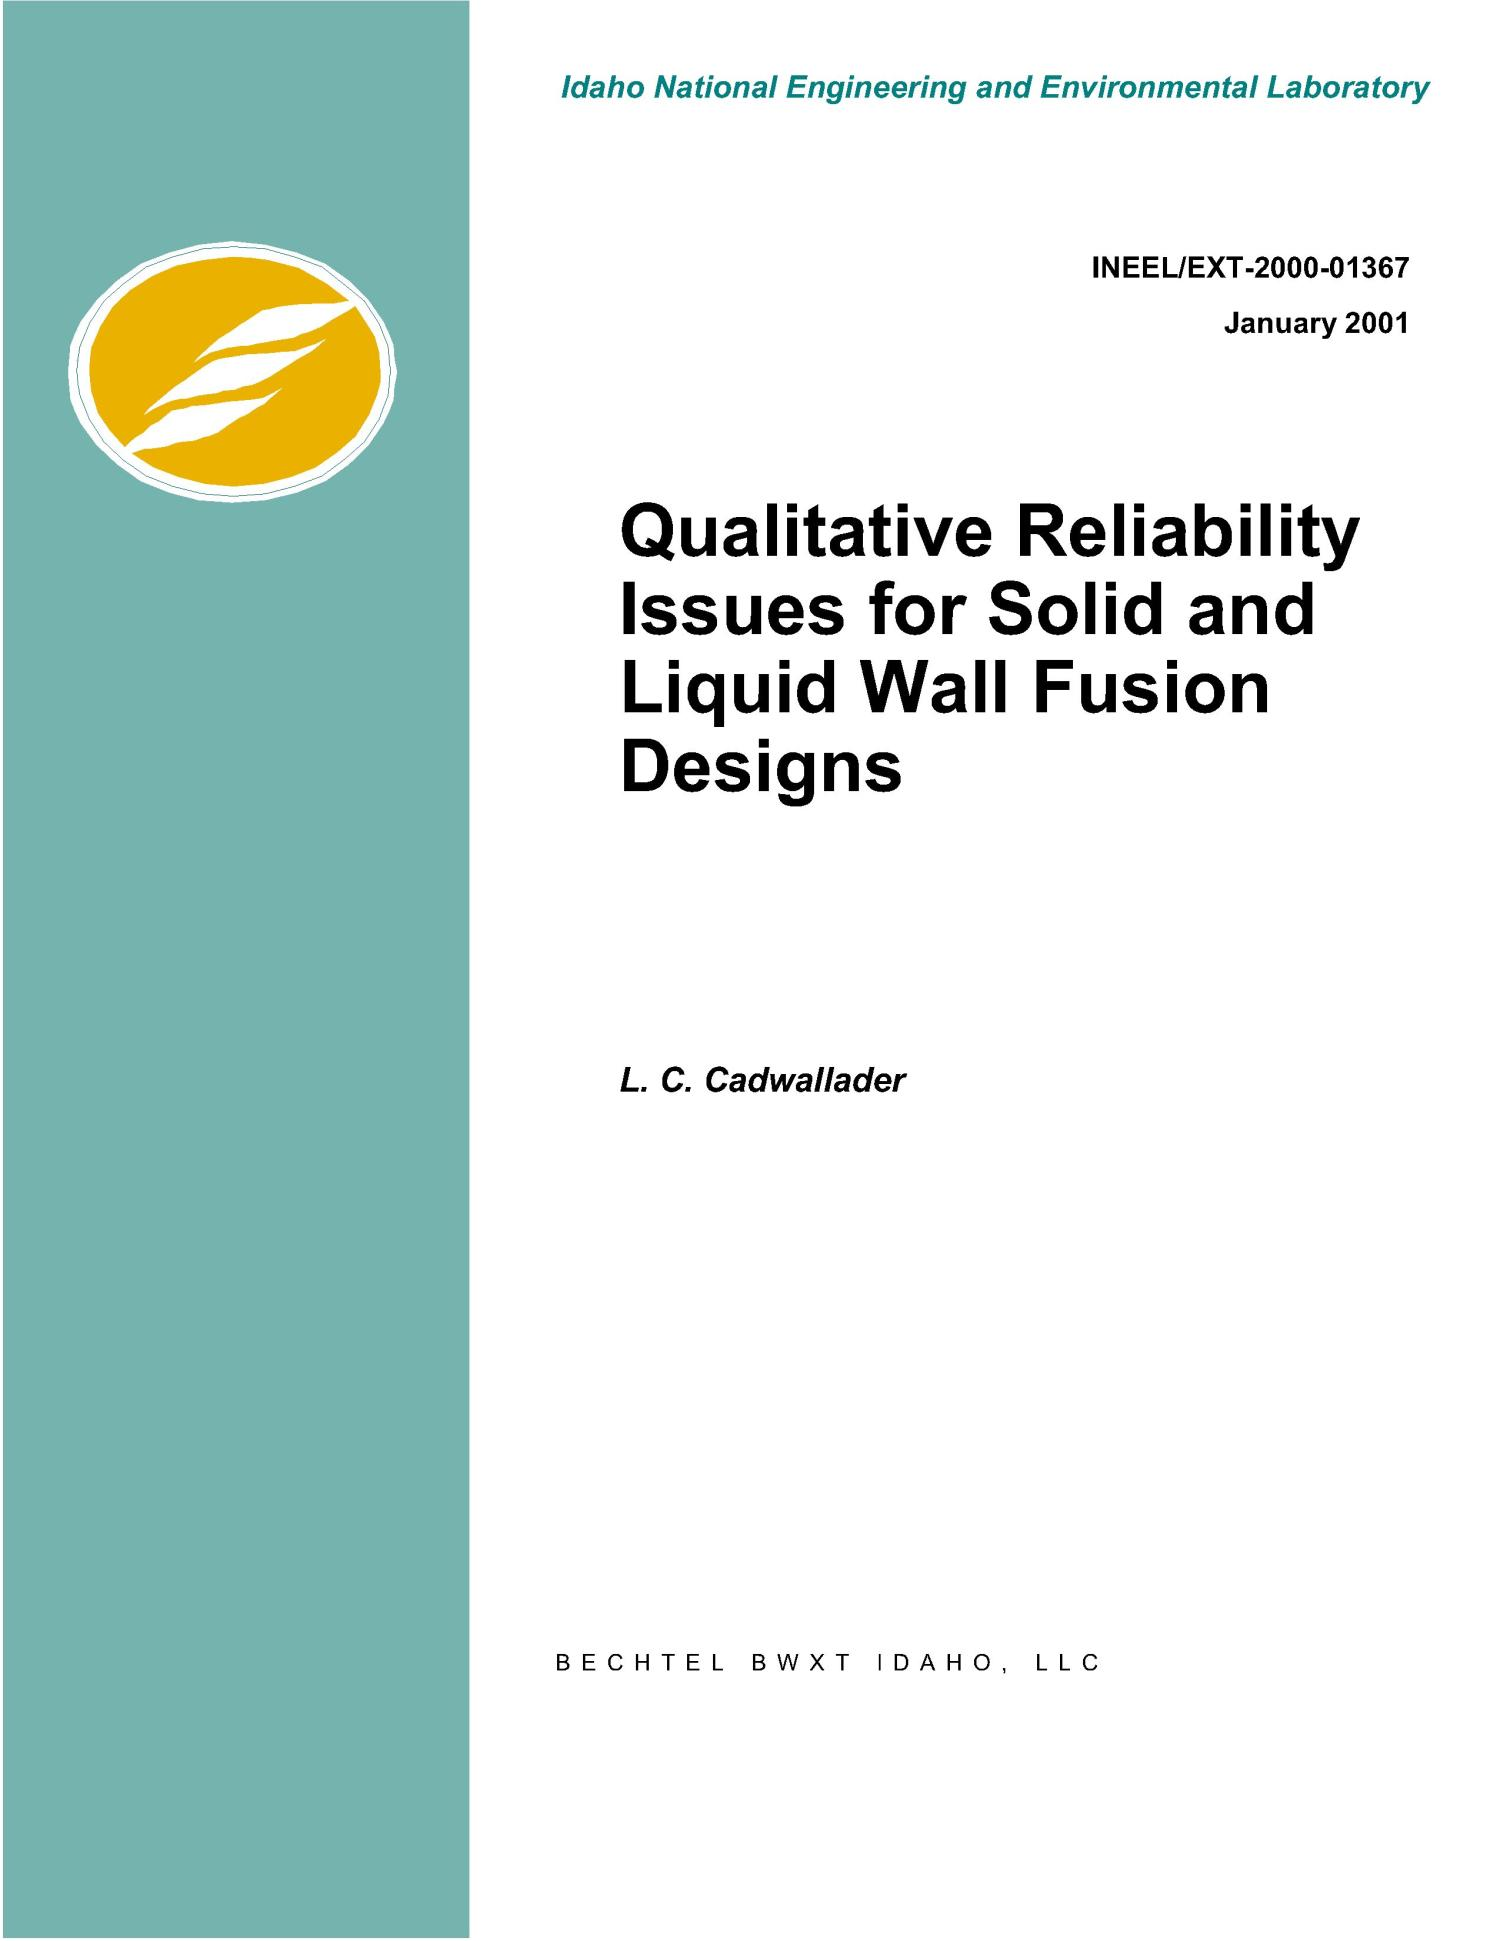 Qualitative Reliability Issues for Solid and Liquid Wall Fusion Design                                                                                                      [Sequence #]: 1 of 66